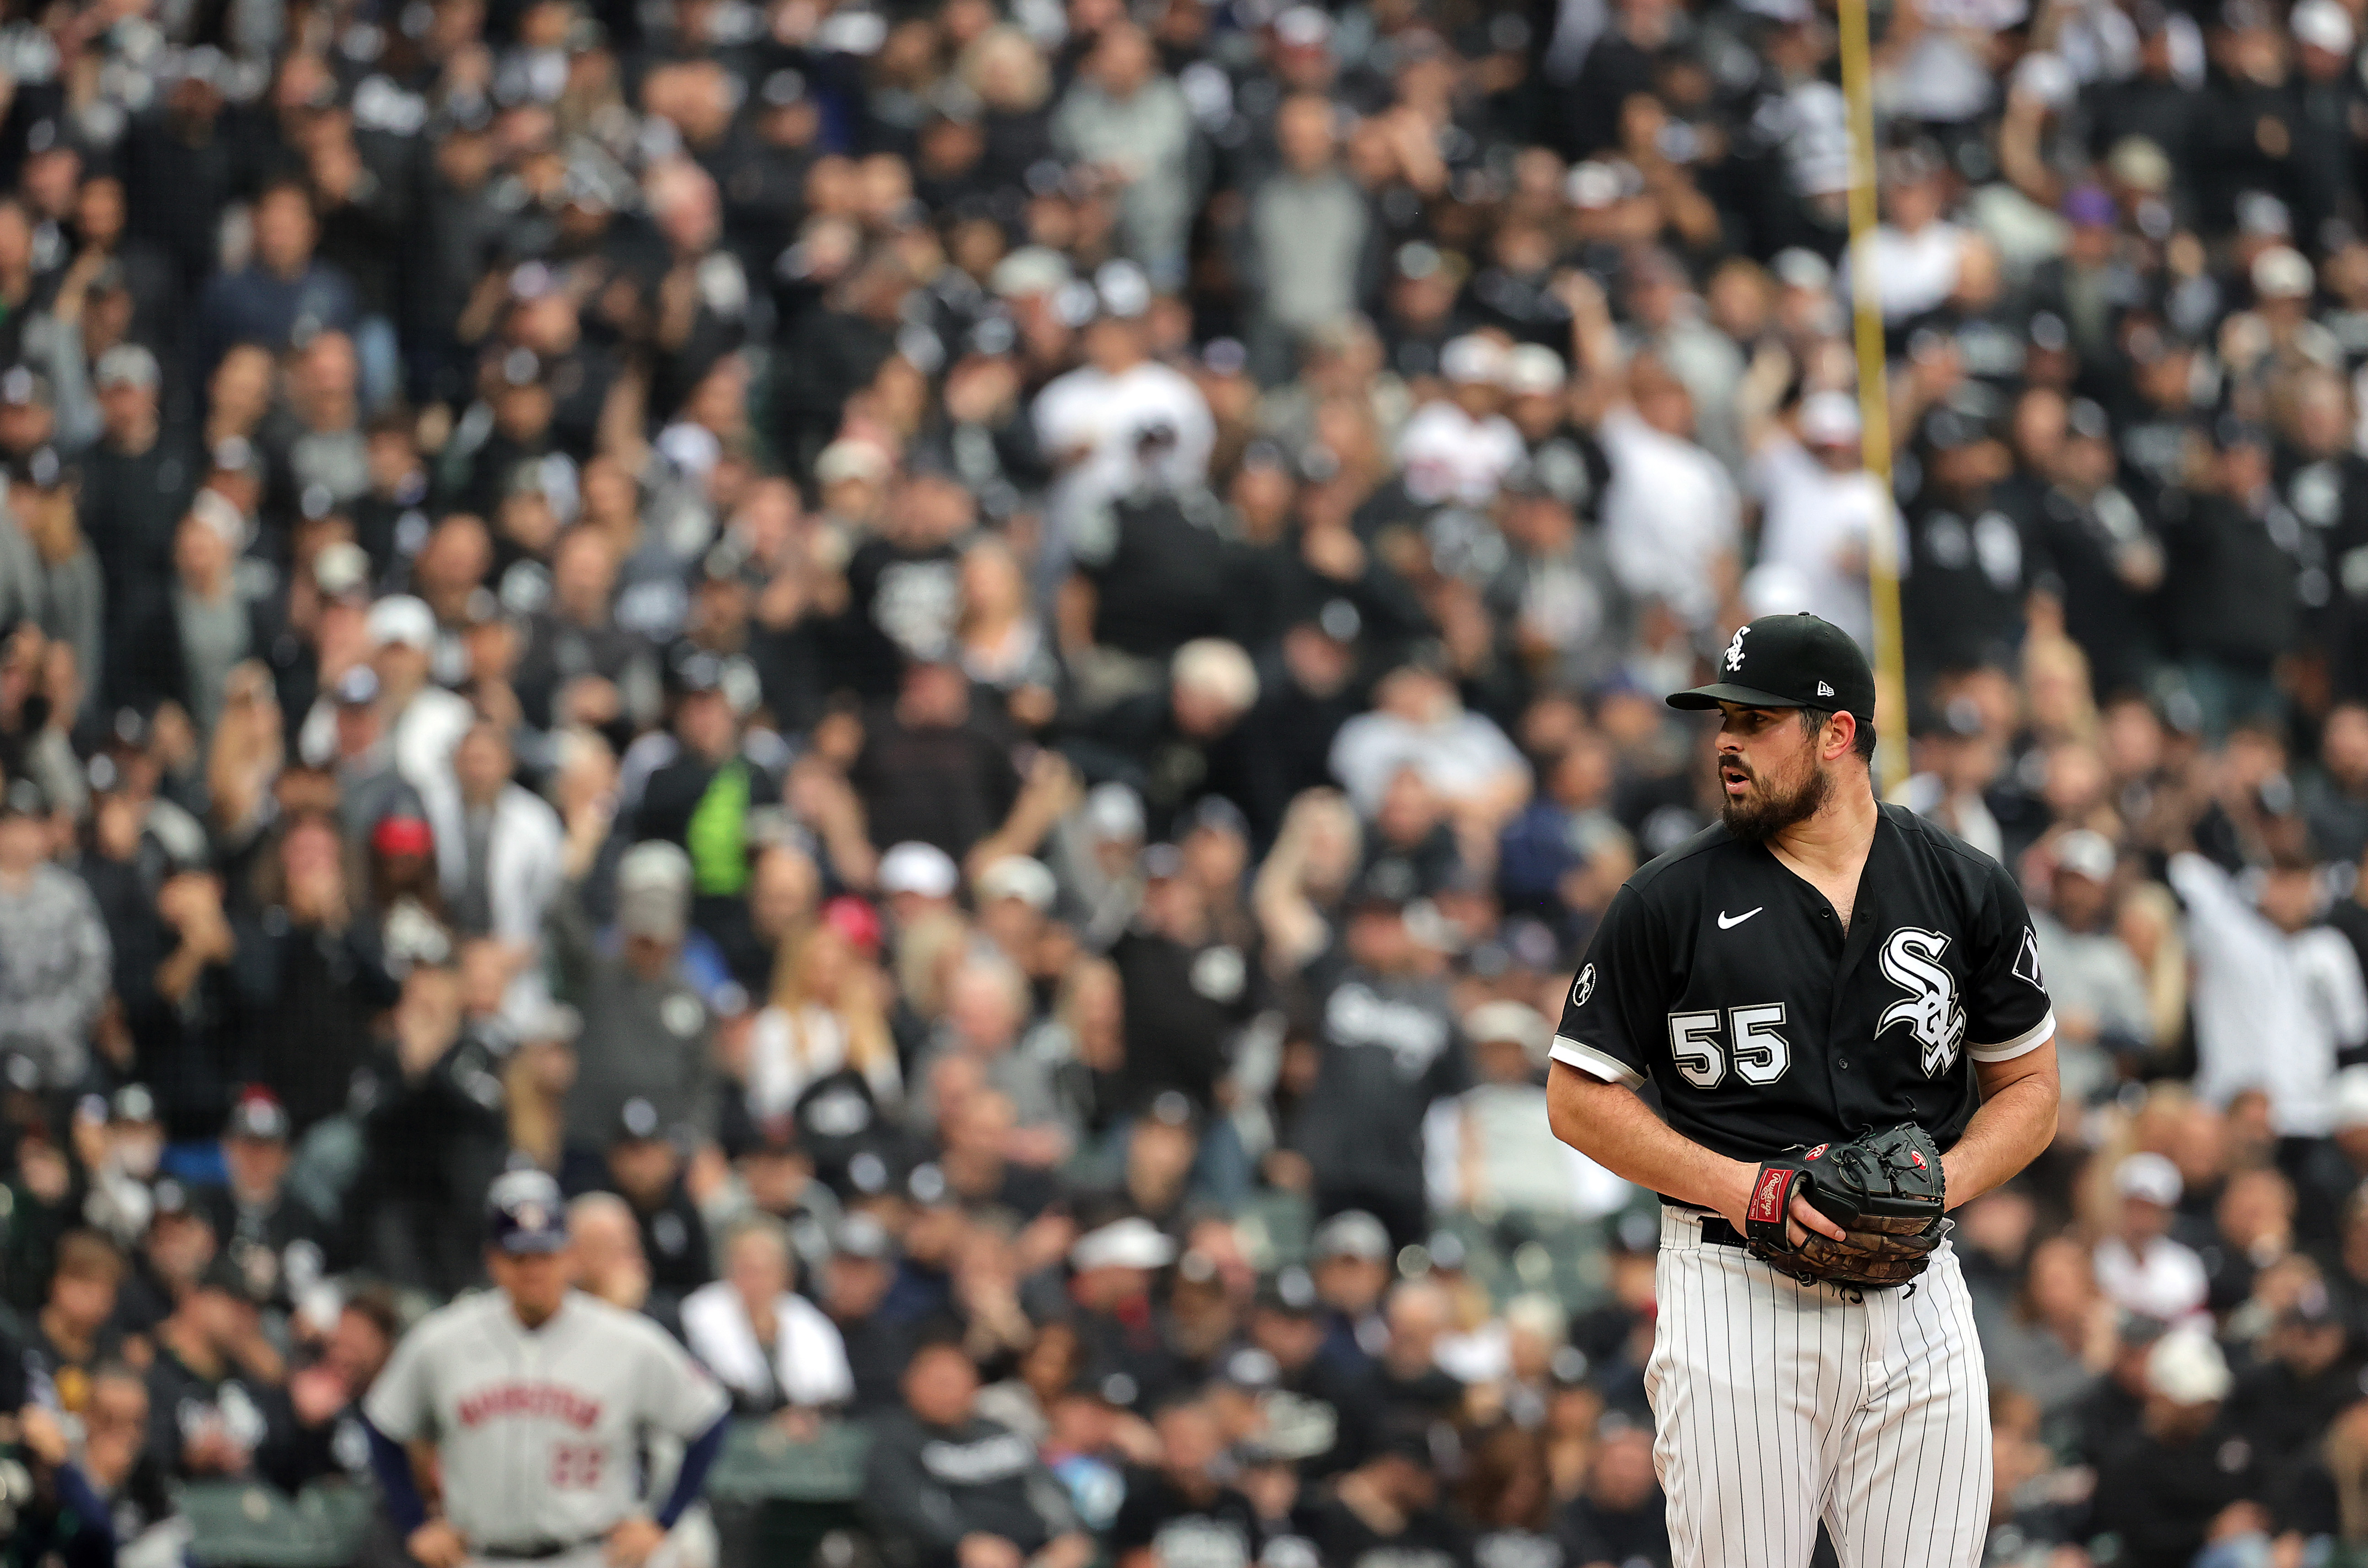 Carlos Rodon has an uncertain future as he enters free agency, and Tuesday's ALDS Game 4 start could have been his last in a White Sox uniform.